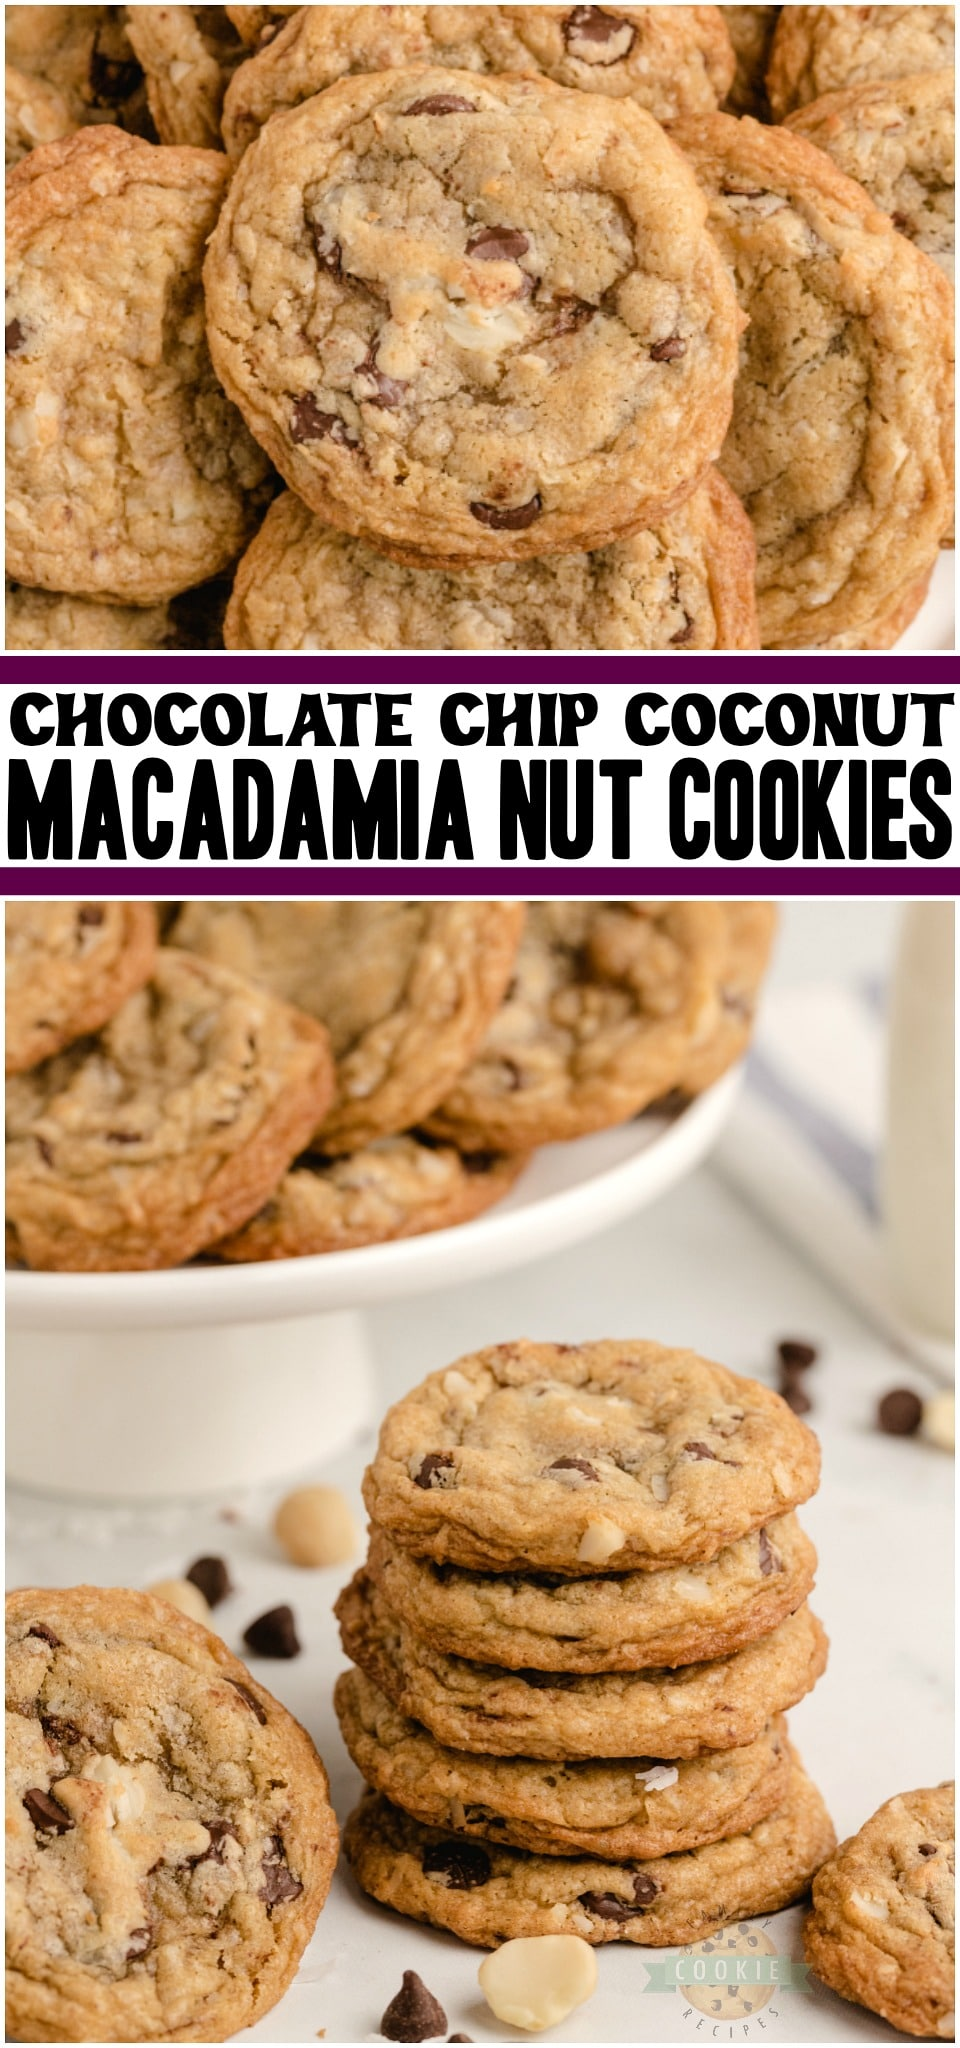 Chocolate chip macadamia nut cookies are soft & chewy cookies loaded with sweet chocolate and nuts! These Coconut Macadamia Nut Cookies are perfect for chocolate chip lovers who want to try something a bit different.